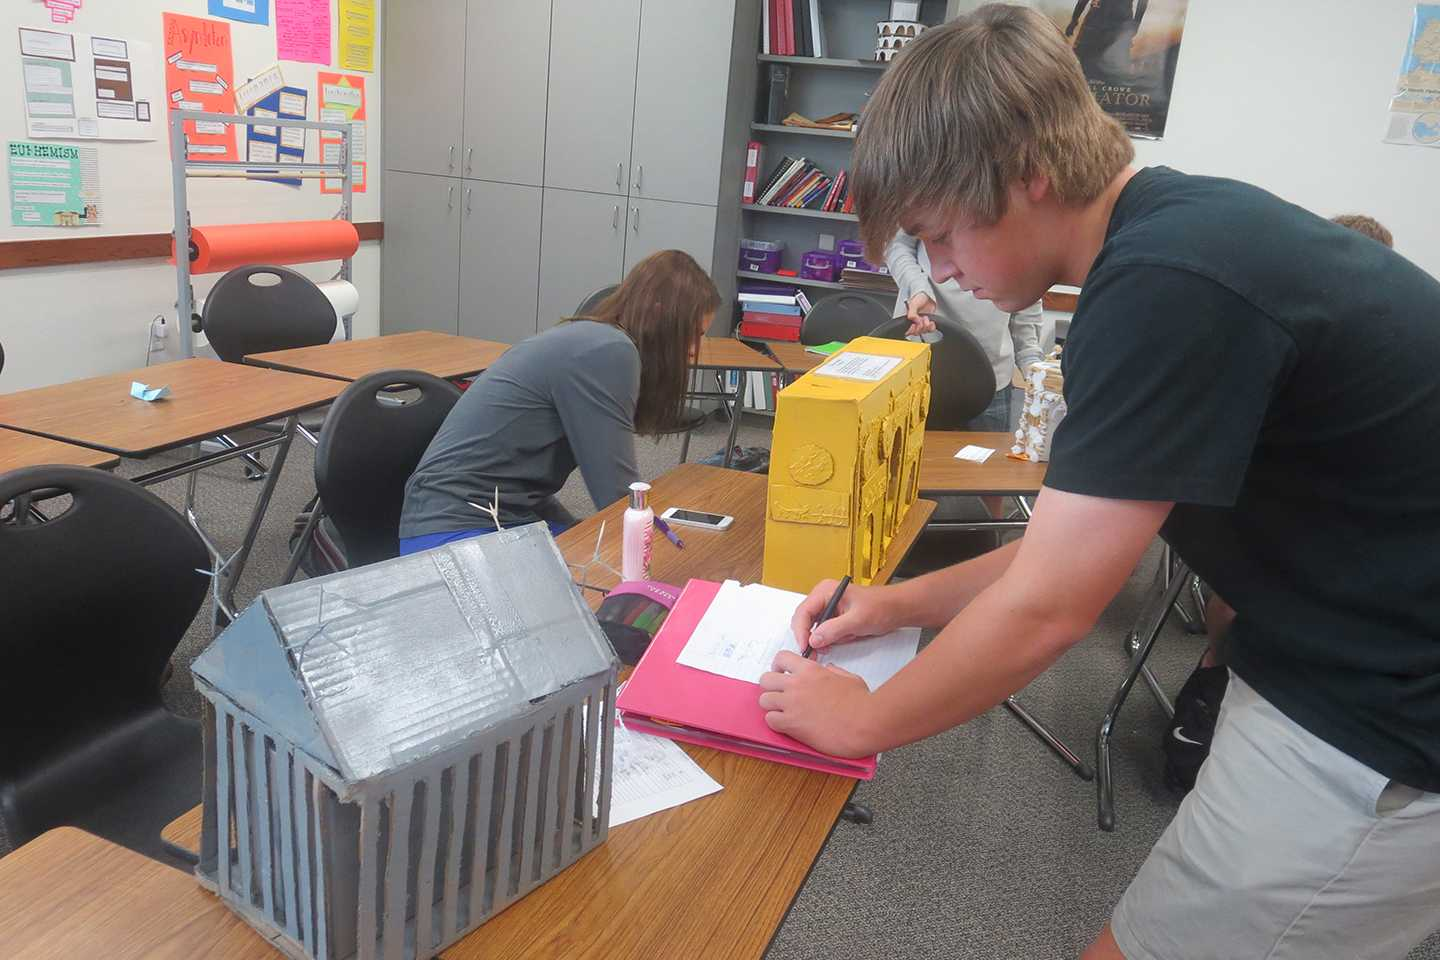 Sophomore Latin student Christopher McKenzie draws another student's project.